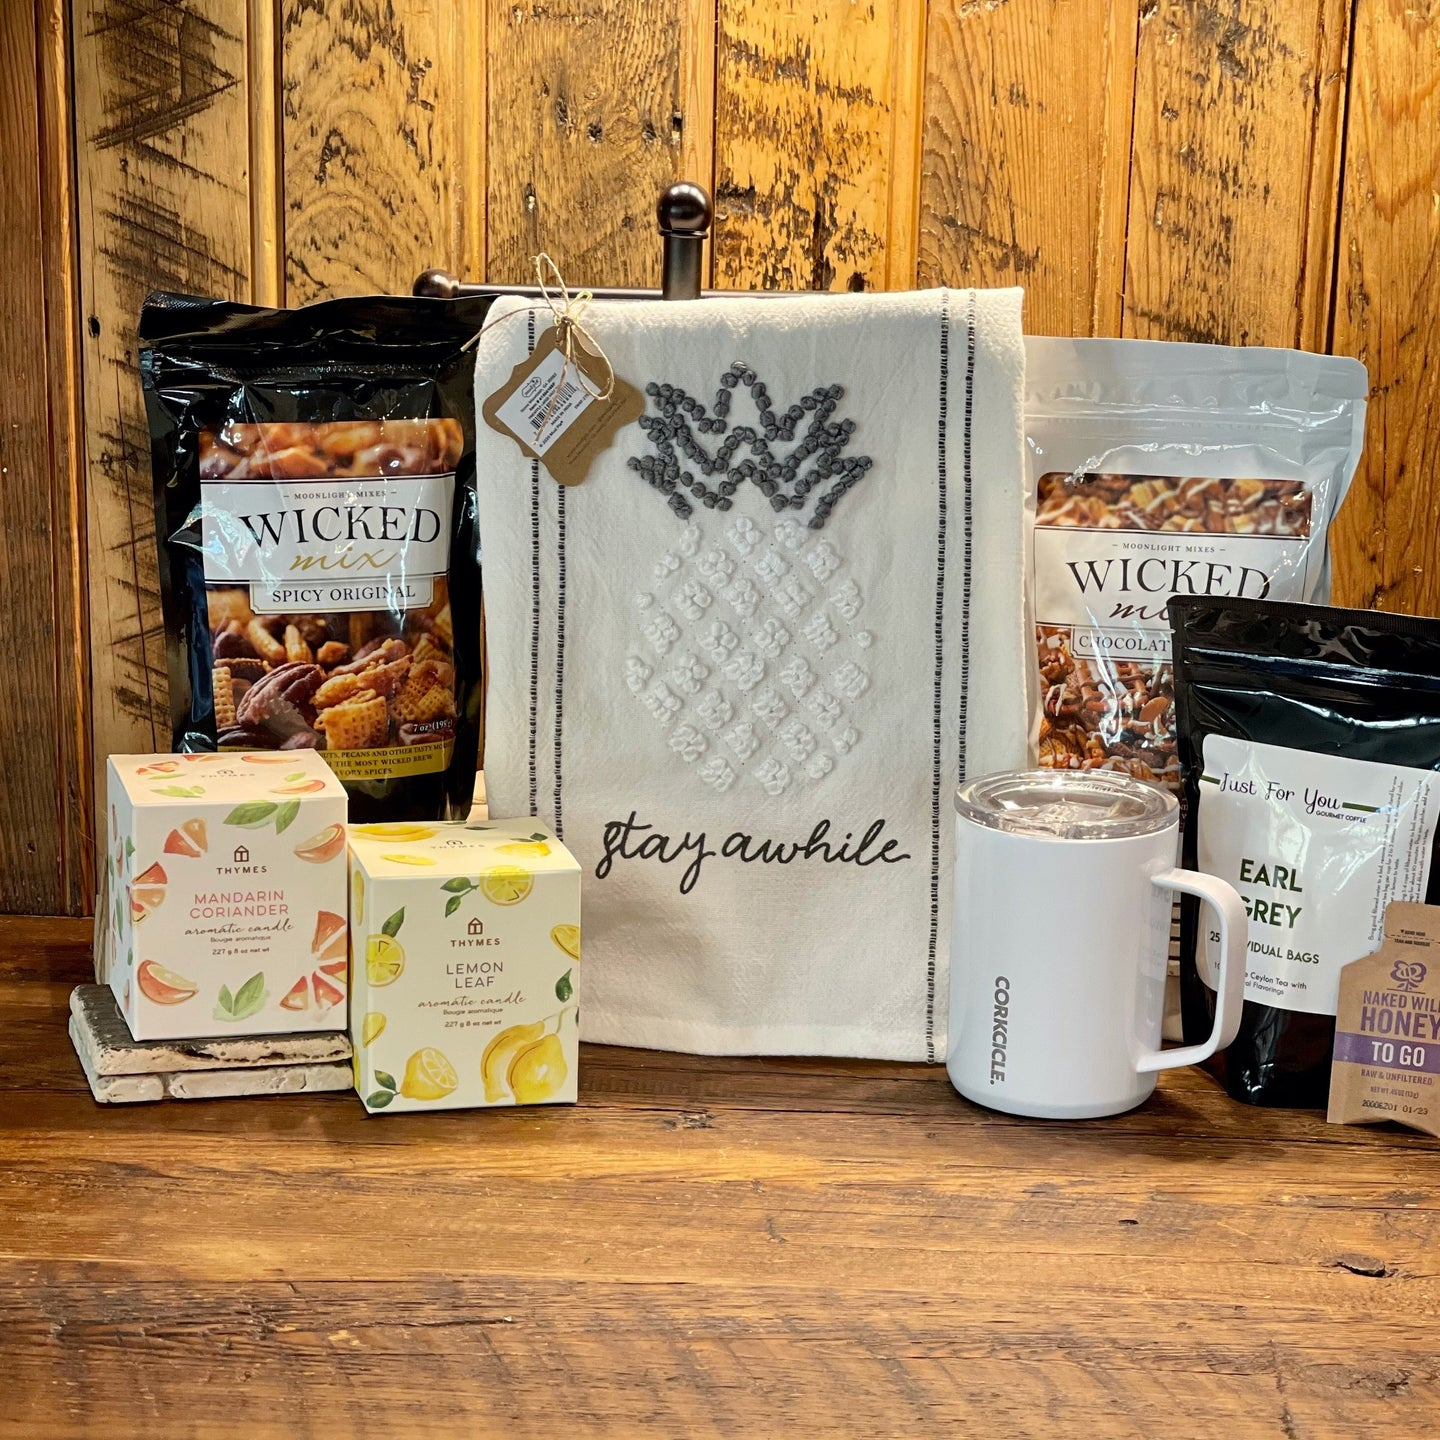 This Box Includes:  Mud Pie Knot Towel (Choose Stay Awhile, Bee Home, Welcome) Wicked Mix (Original or Chocolate) Thymes Candle (Lemon or Mandarine) Corkcicle Coffee Mug  One French Roast Coffee & One Earl Grey Tea w/ Honey